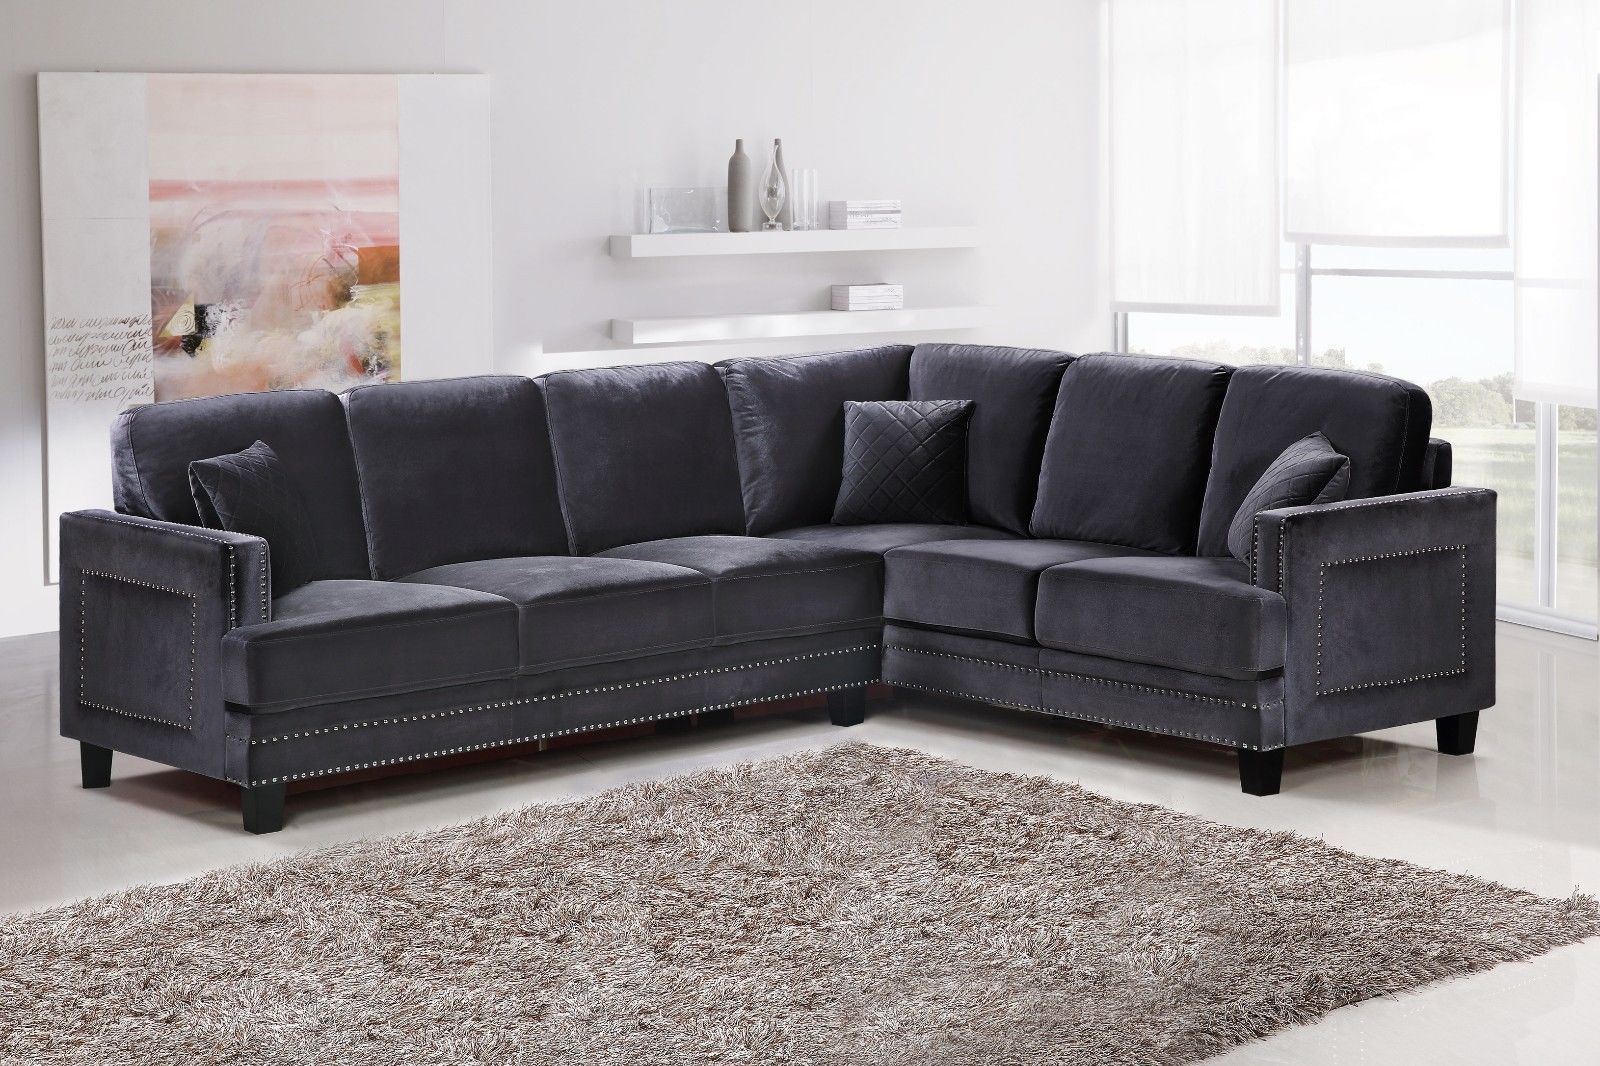 Meridian 655 Grey Velvet Sectional Chic Contemporary Right Hand Facing